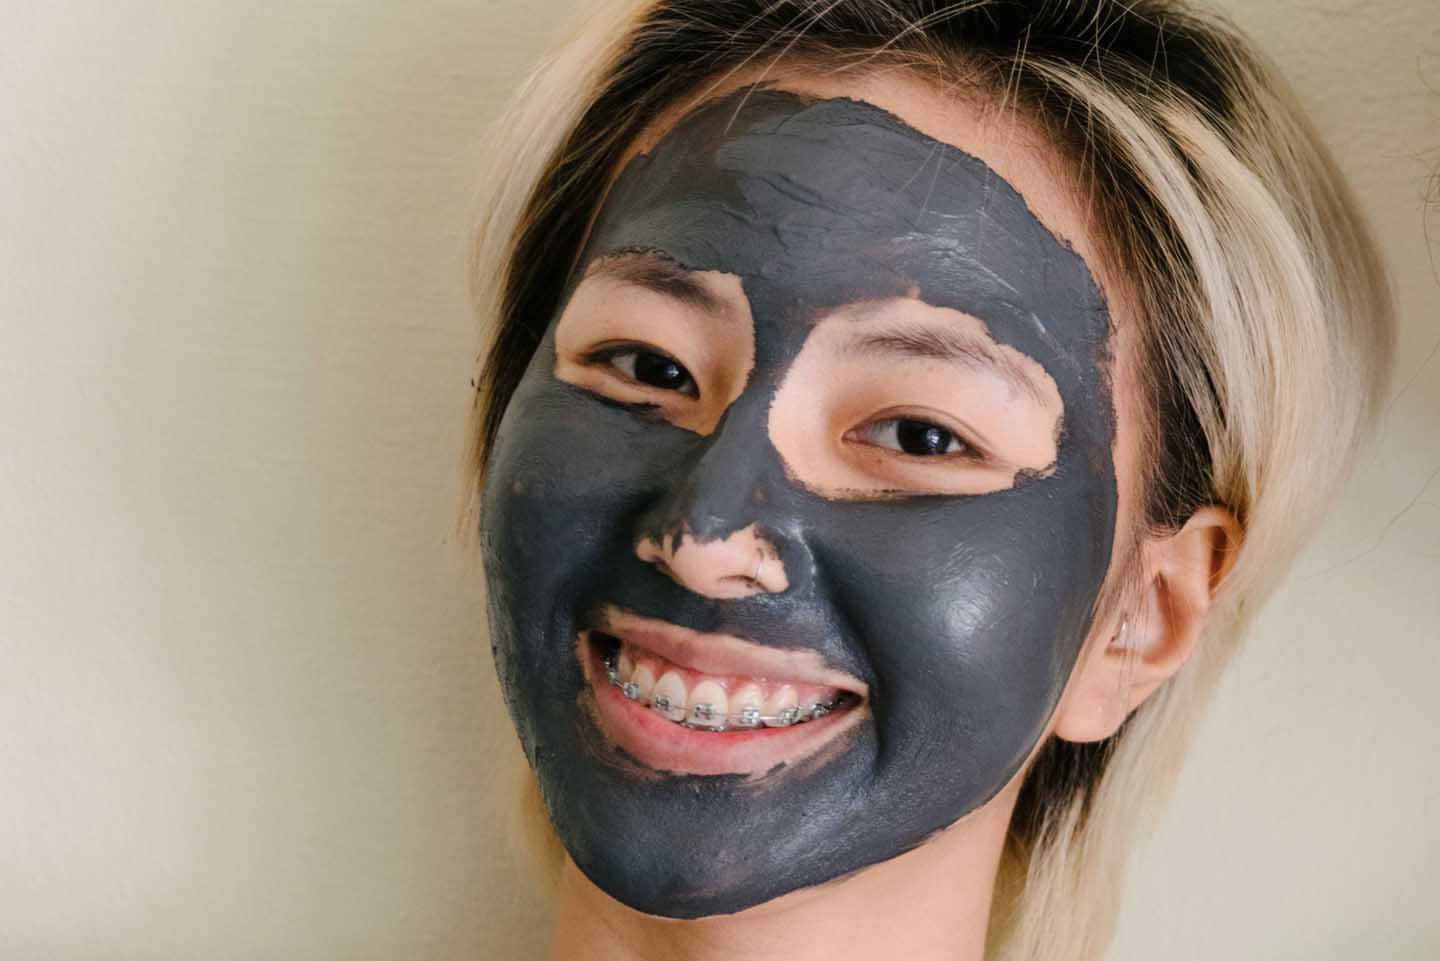 Acne treatment mask - Foto by Ketut Subiyanto from Pexels